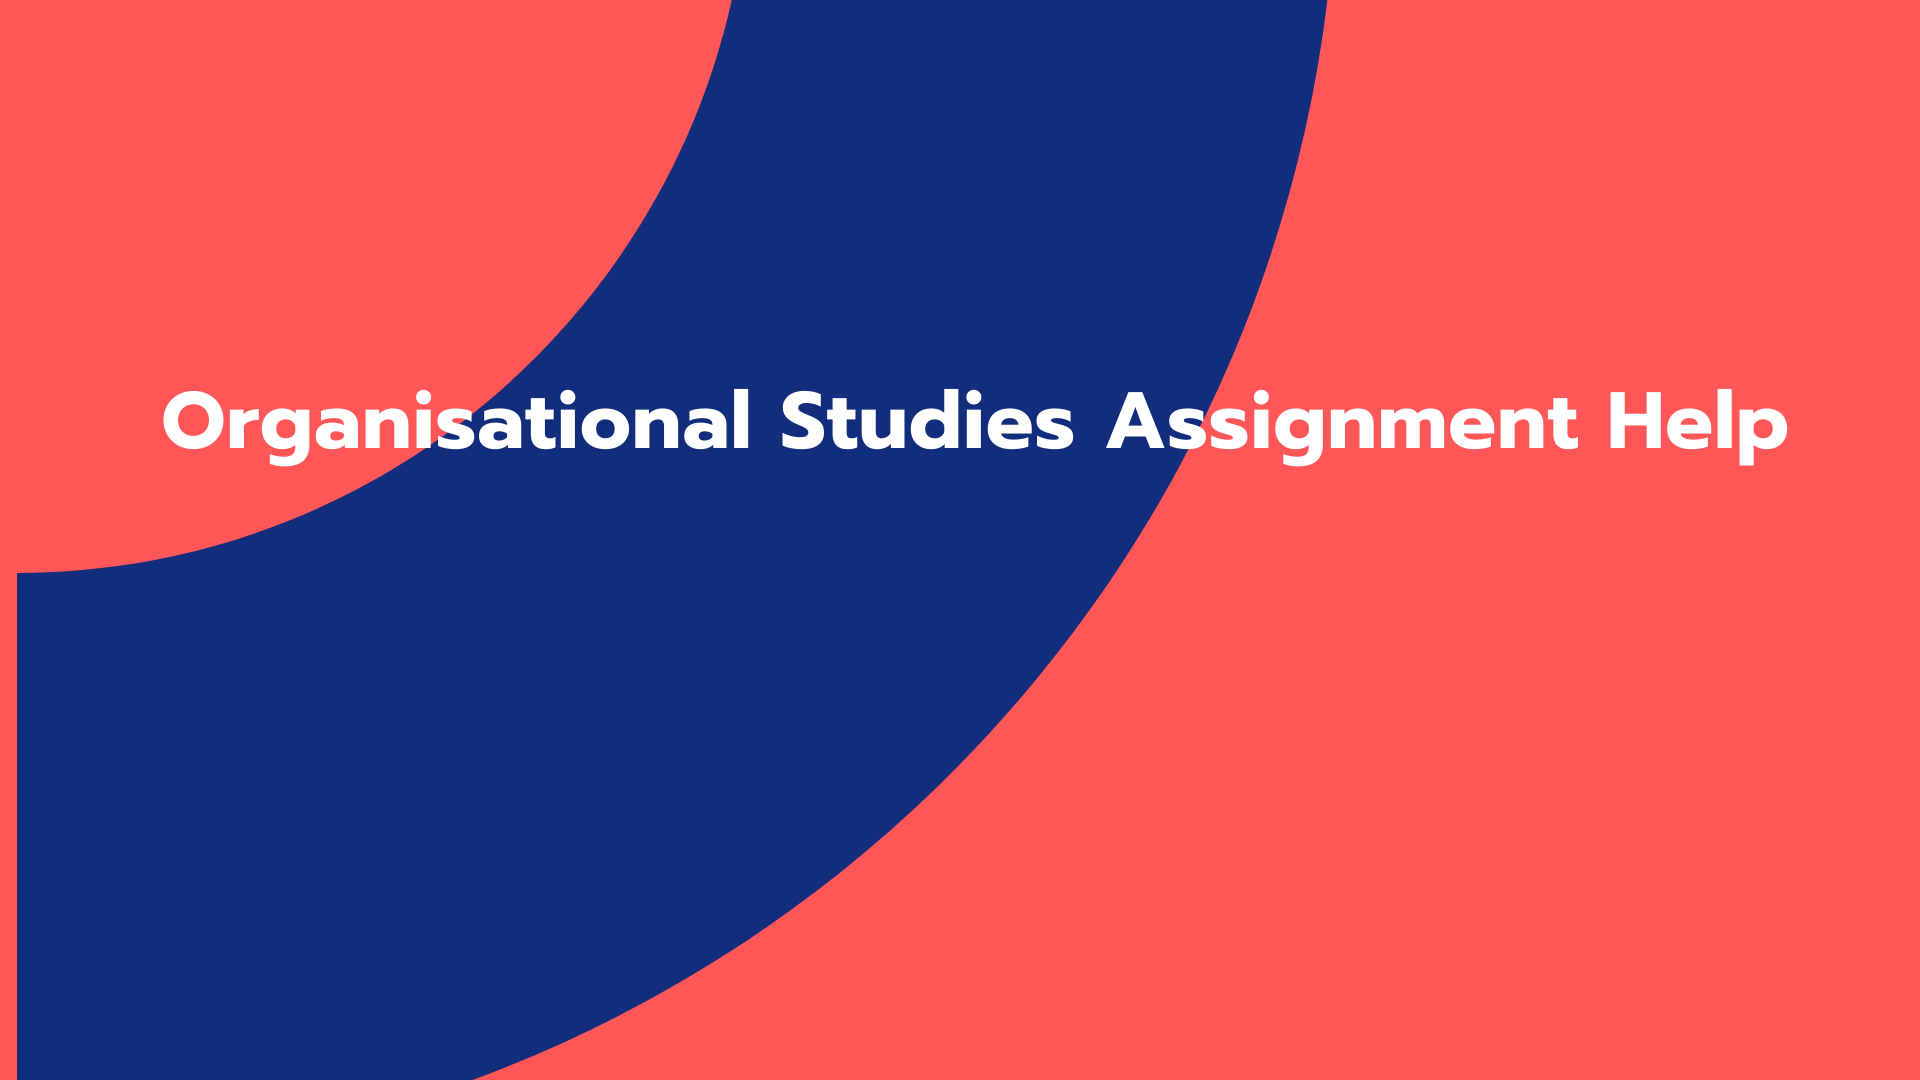 Organisational Studies Assignment Help